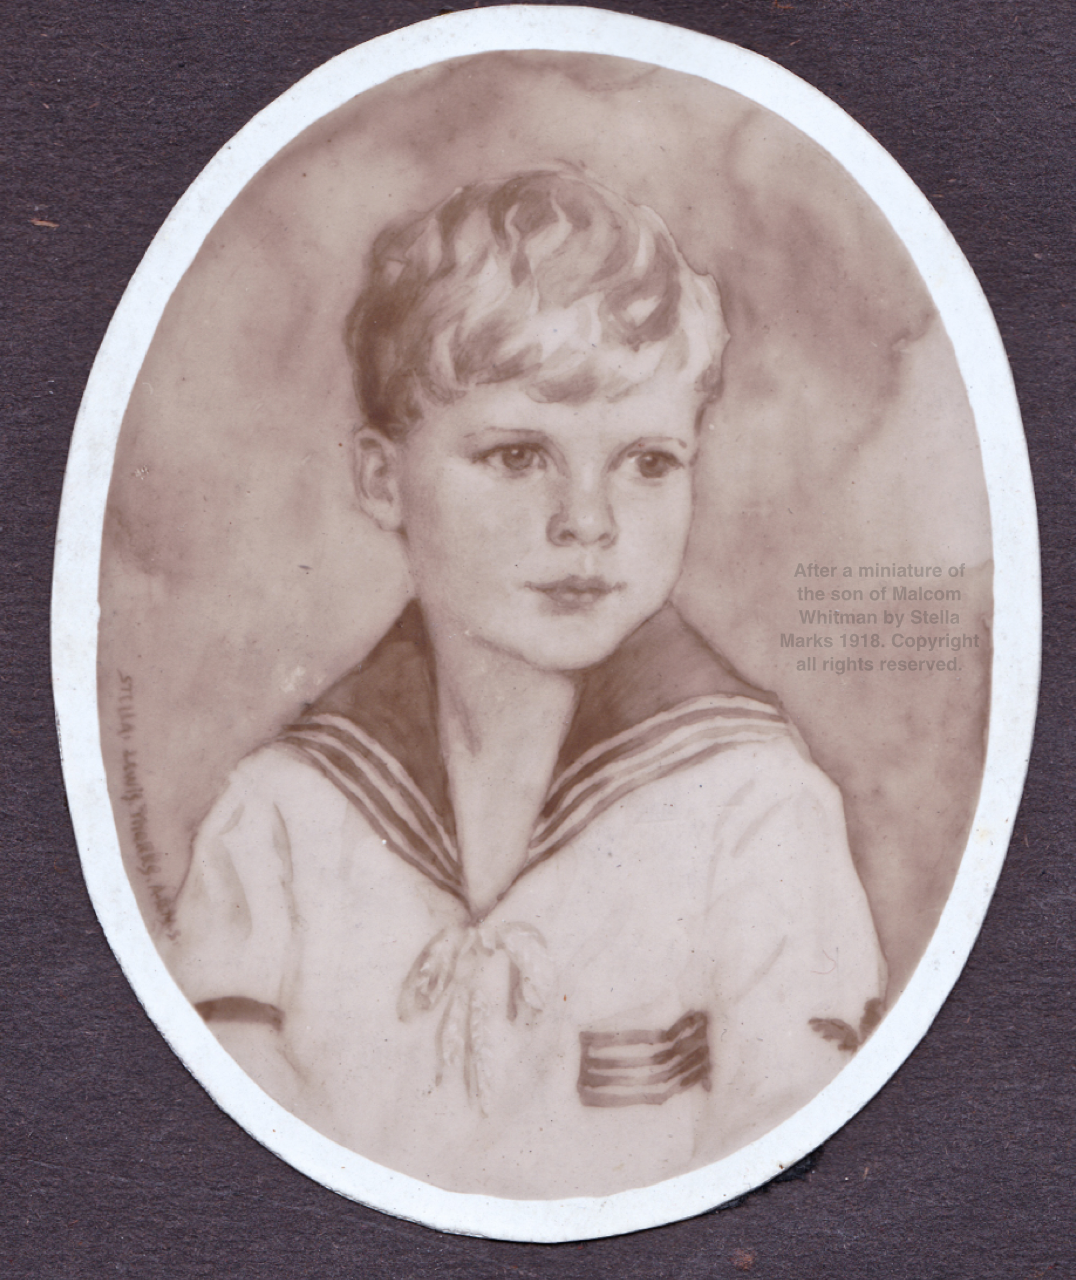 After a miniature of the son of Malcolm Whitman by Stella Marks 1918. Copyright Stella Marks' Estate all rights reserved